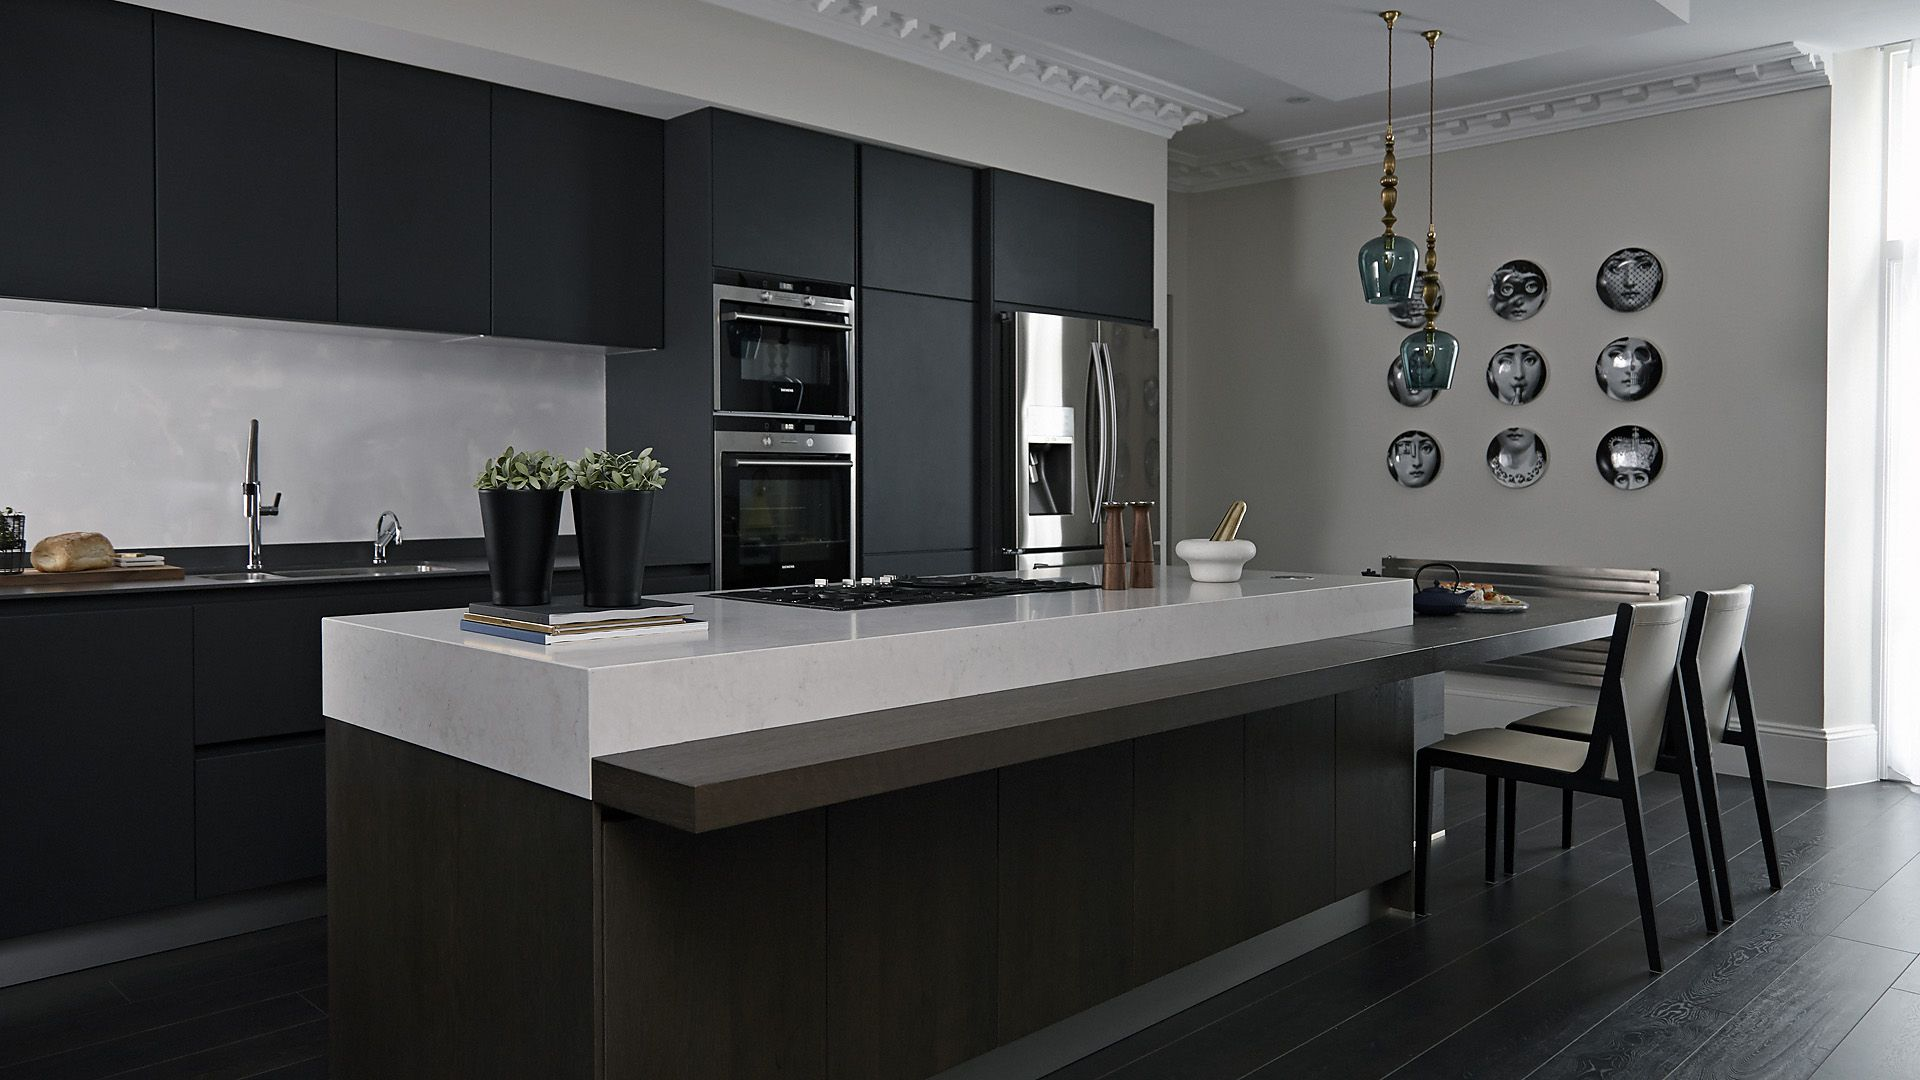 Interior Designed Kitchens Gorgeous Marble Work Surface In Black And Chrome Luxury Kitchen  14 Design Decoration